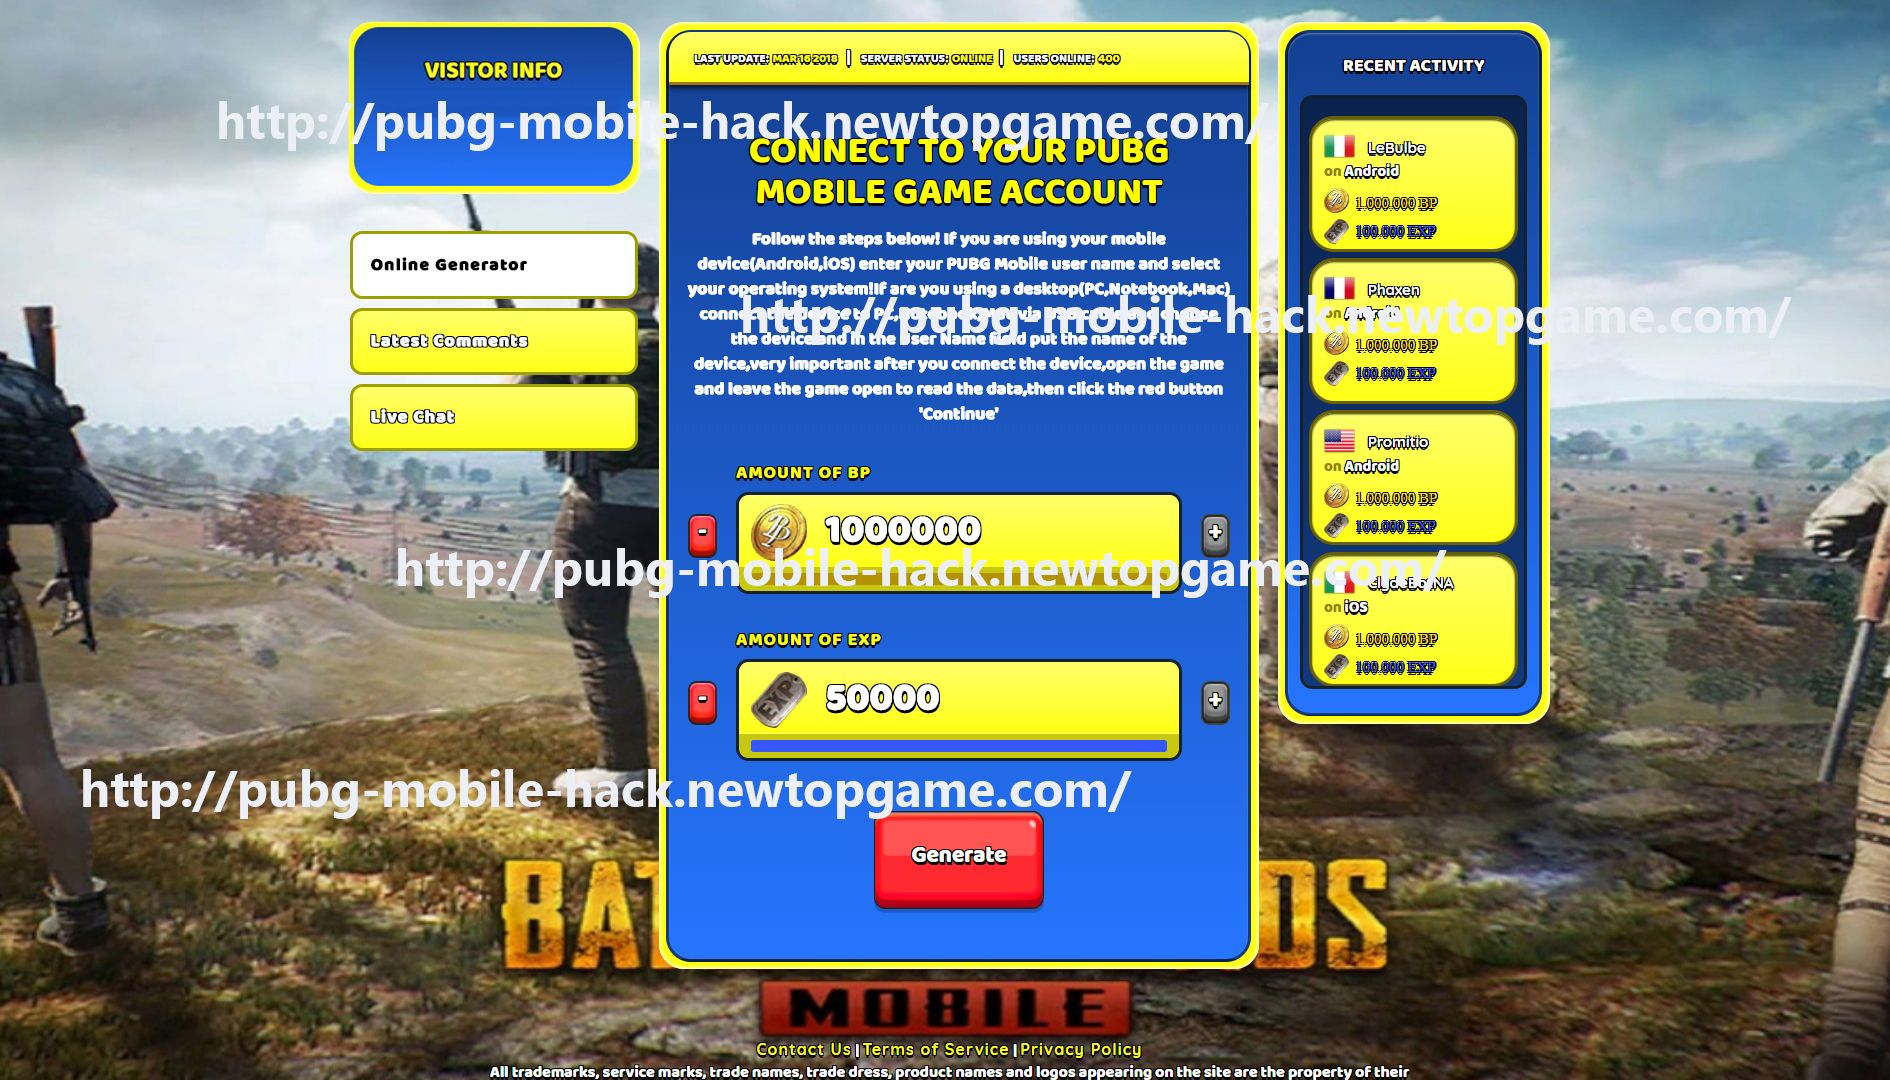 PUBG Mobile Hack Cheat BP & EXP Generator No Survey 2018 | Generator